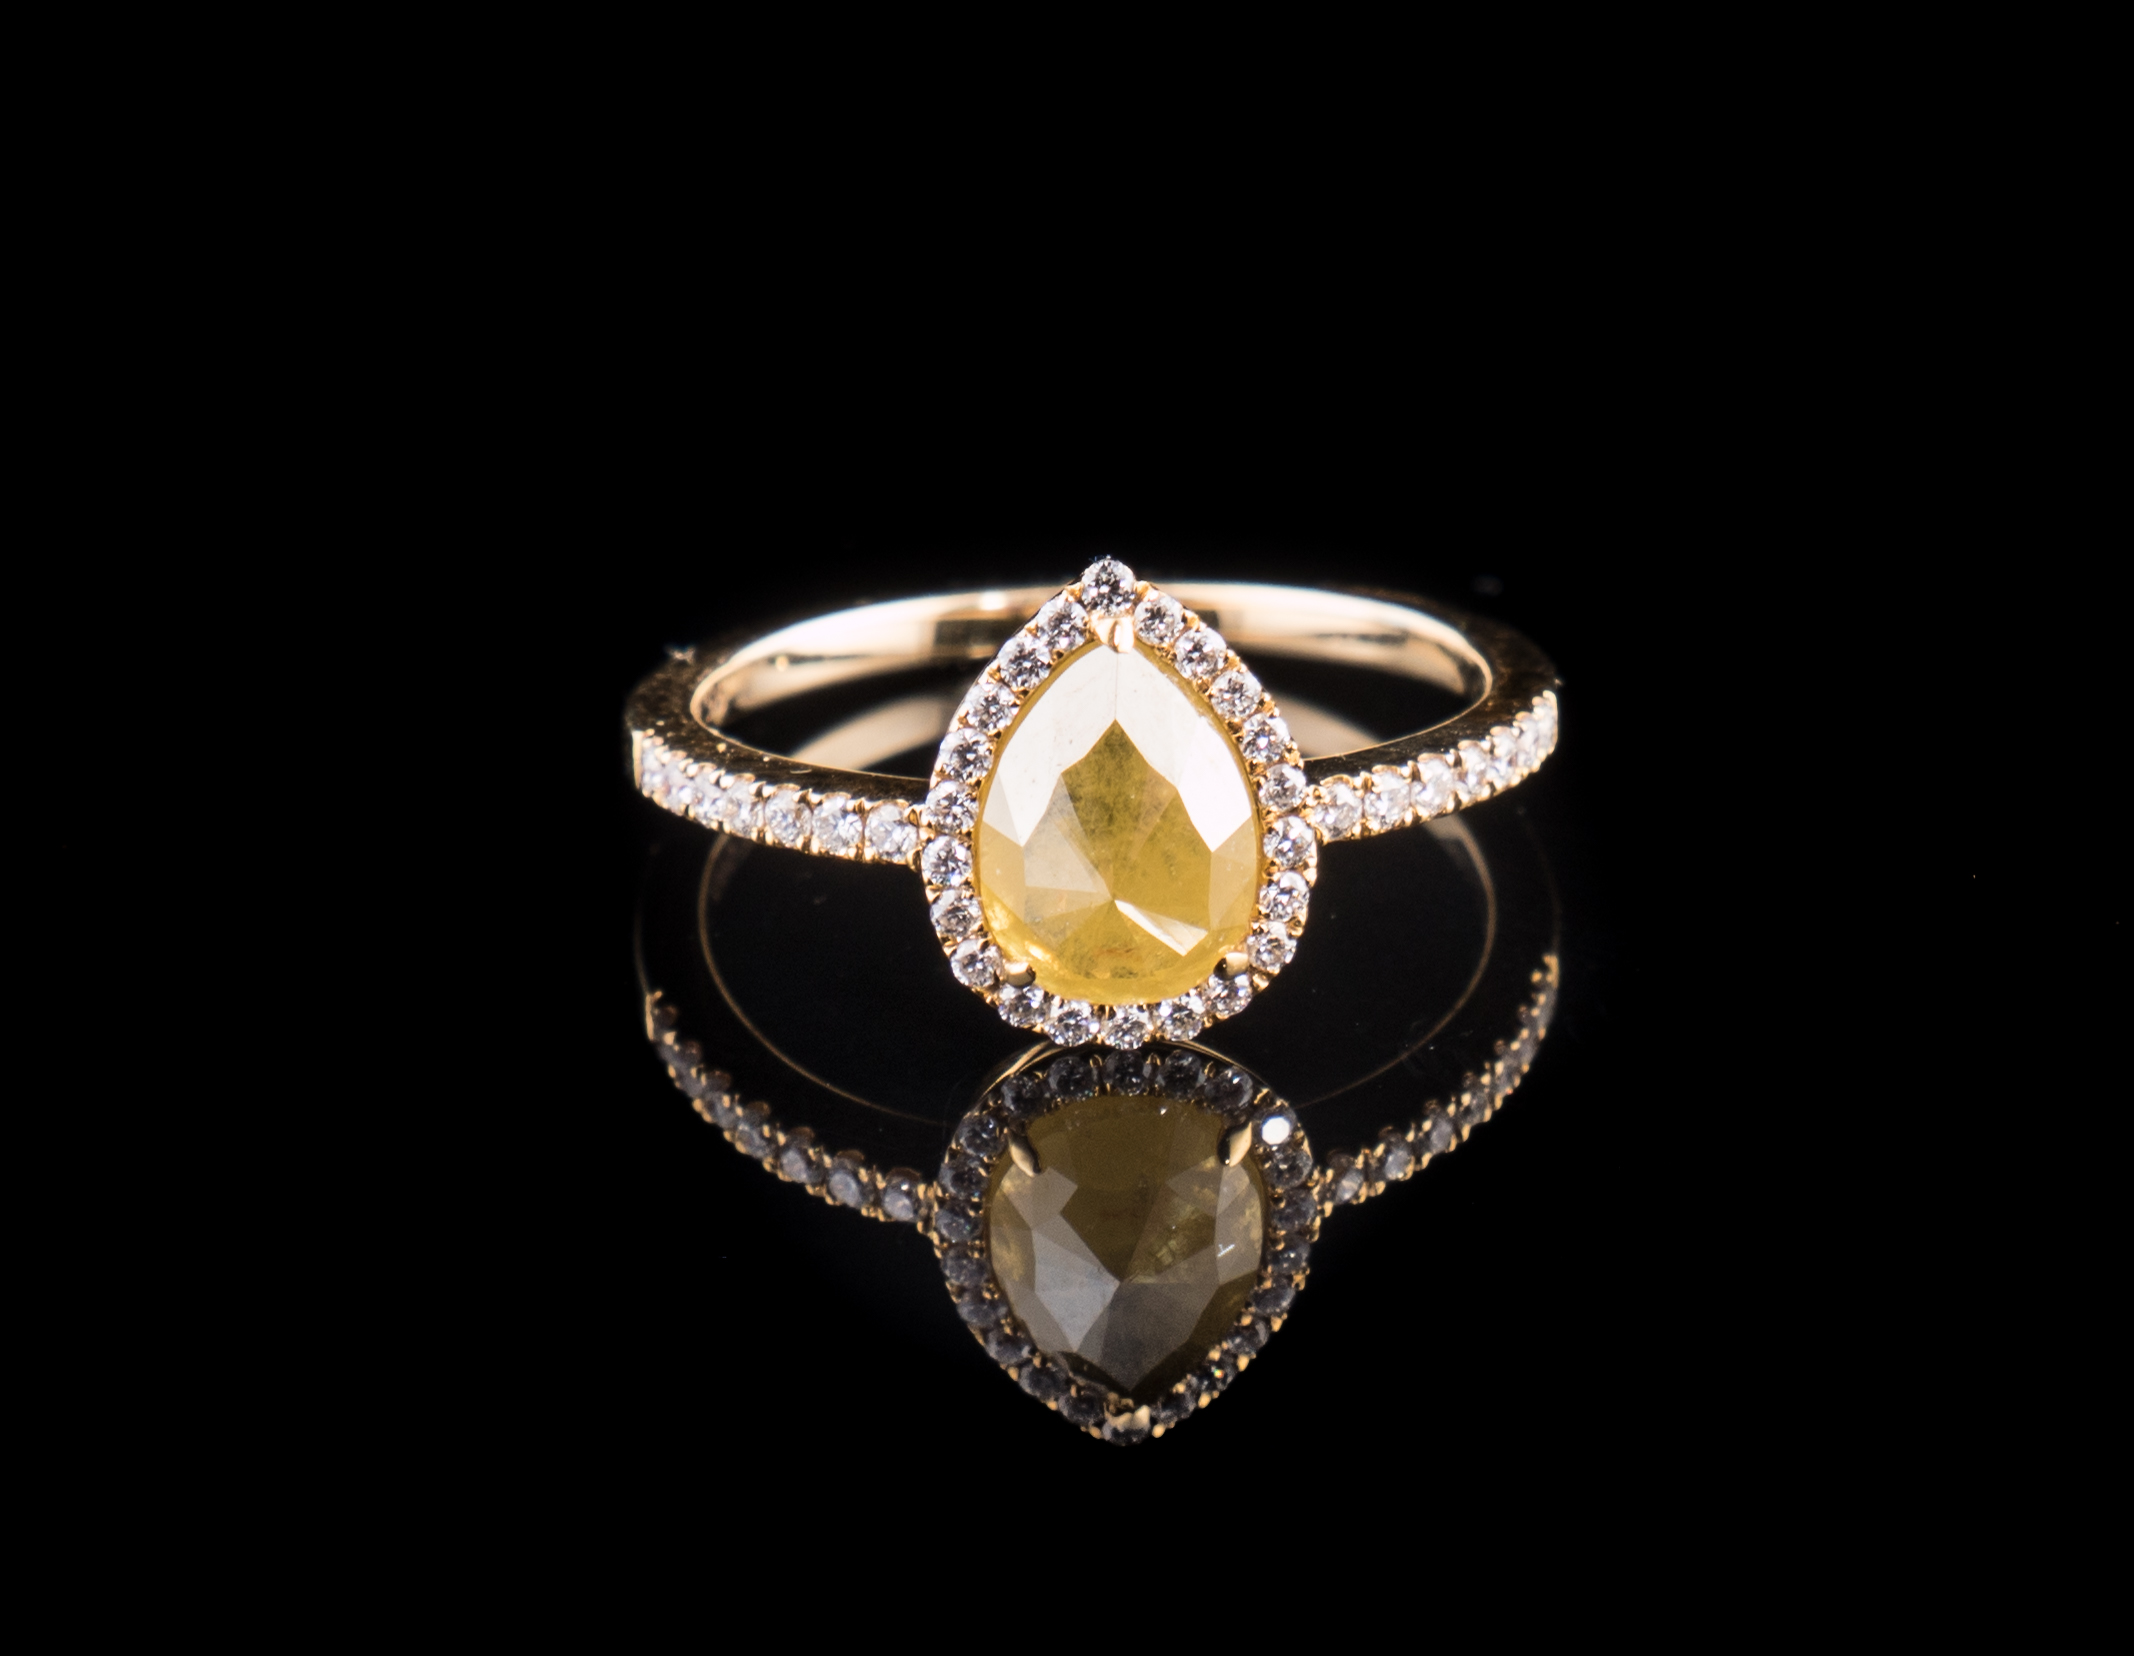 pear shape 14kt yellow gold diamond halo ring with one natural color, rough cut center Diamond.jpg